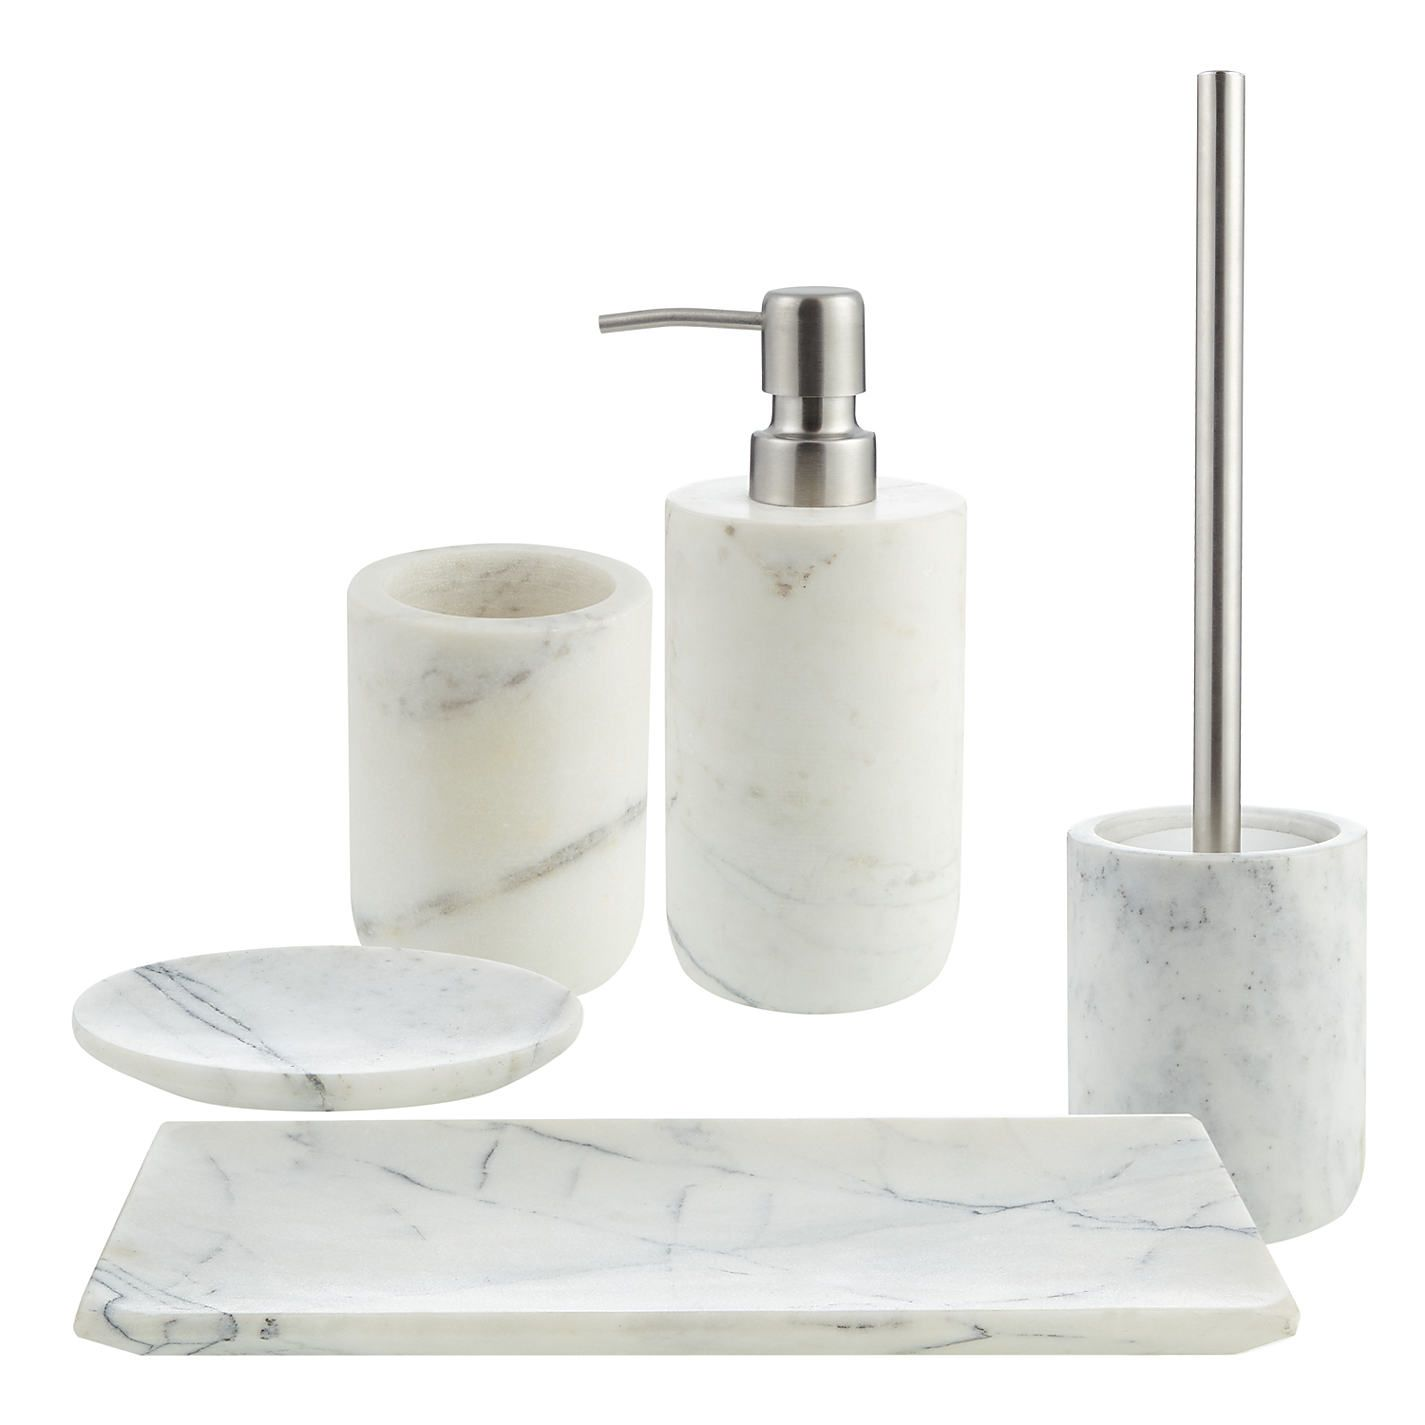 John Lewis White Marble Bathroom Accessories From Our Co Ordinated Range At